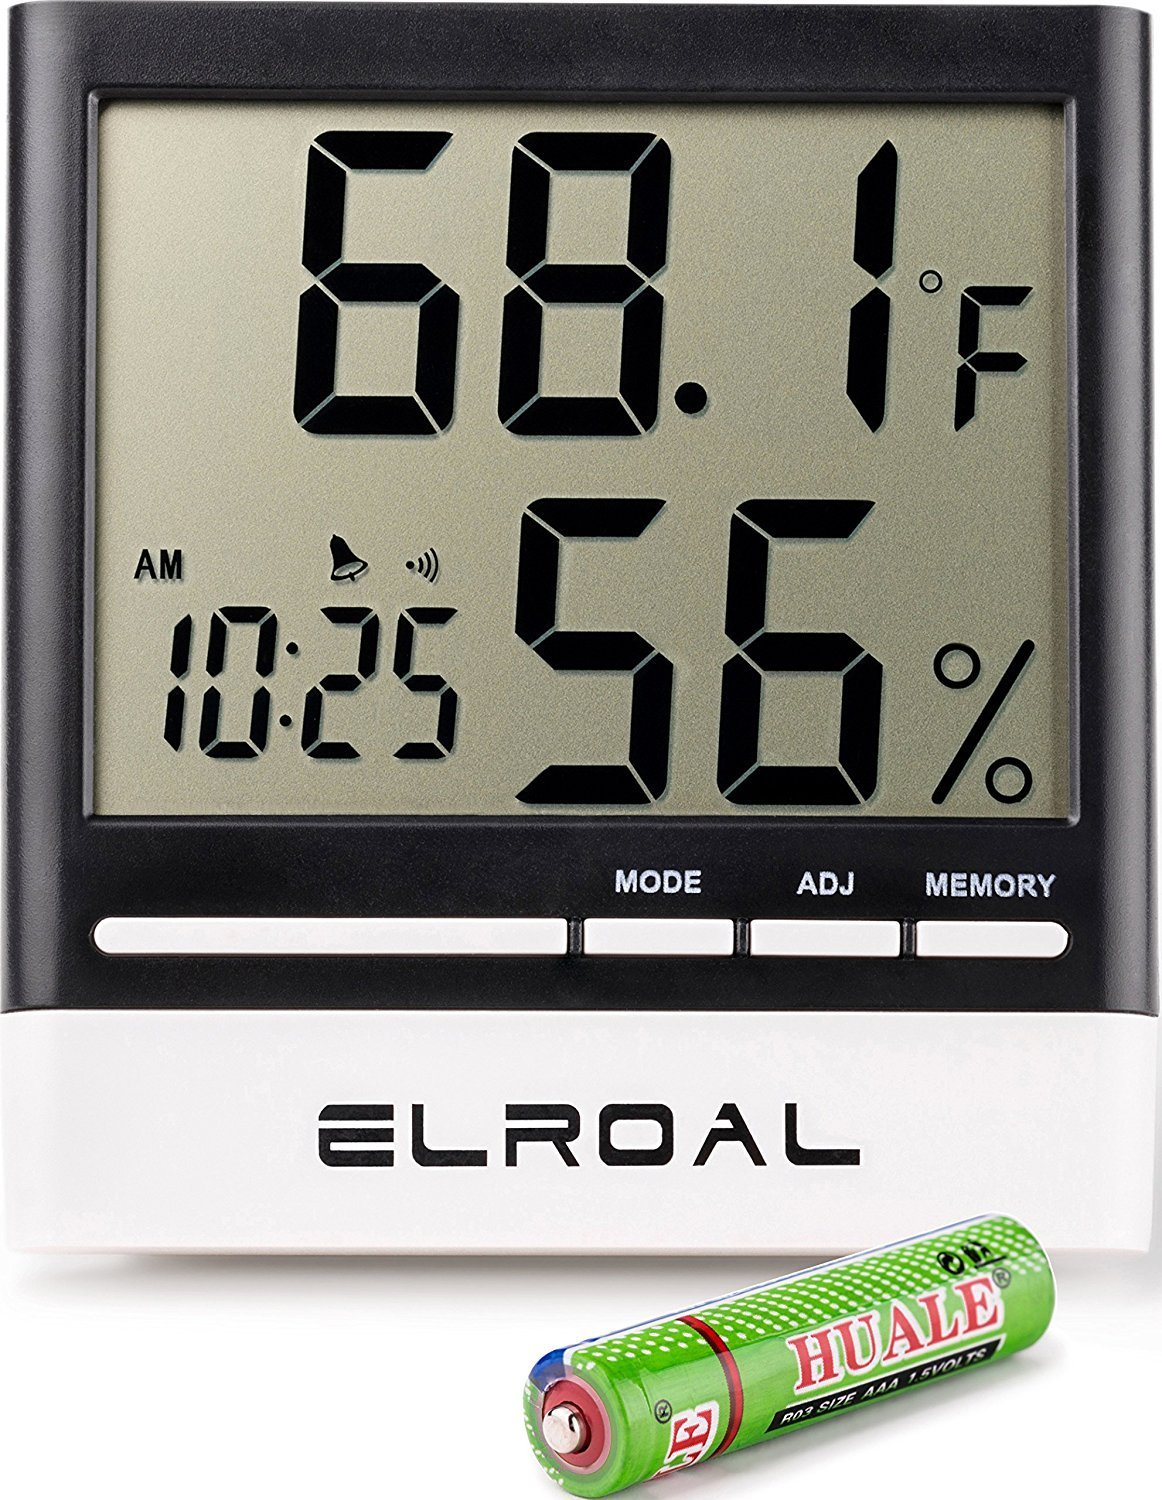 Elroal Humidity Monitor by Digital Indoor Hygrometer - Thermometer - Alarm Clock with LCD Display - Temperature Gauge Humidity Meter for Home or Greenhouse, Basement or Office